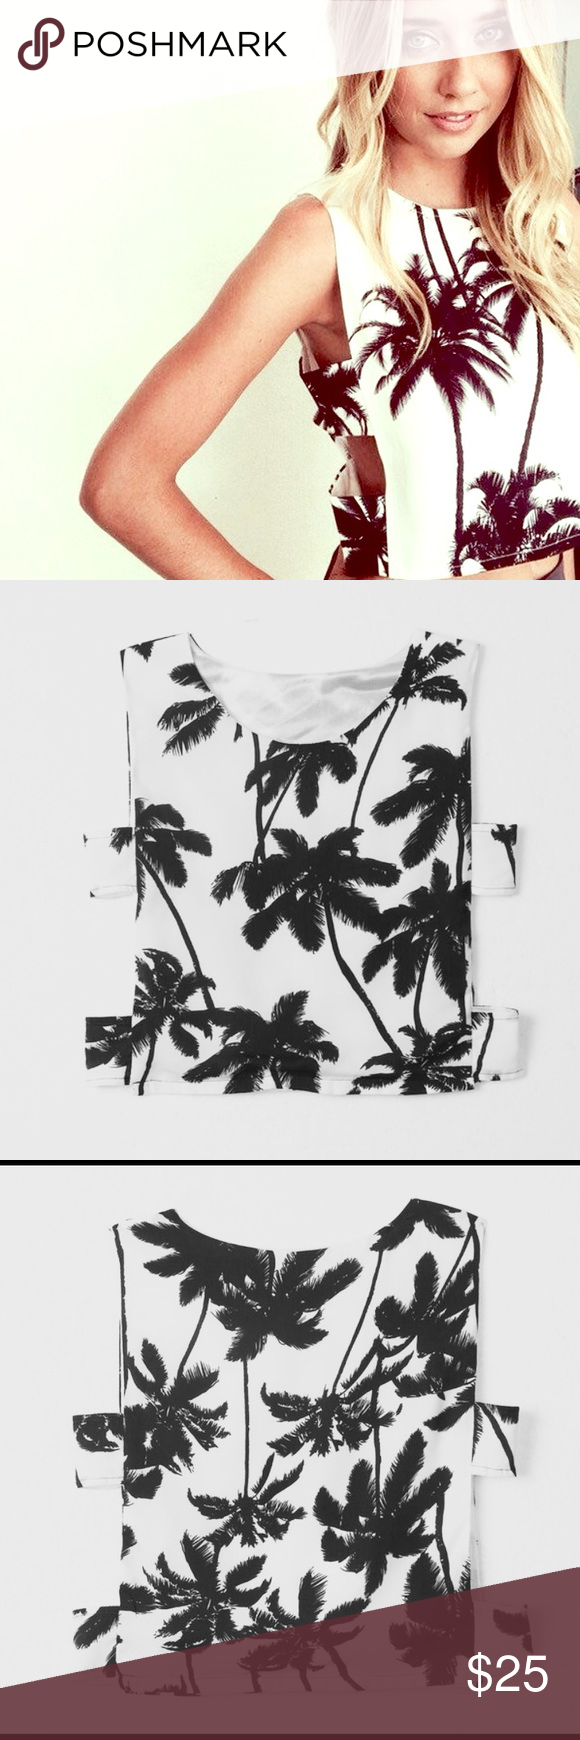 Palm Tree Top w/ Side Cutouts 🌴 Clothes design, Fashion